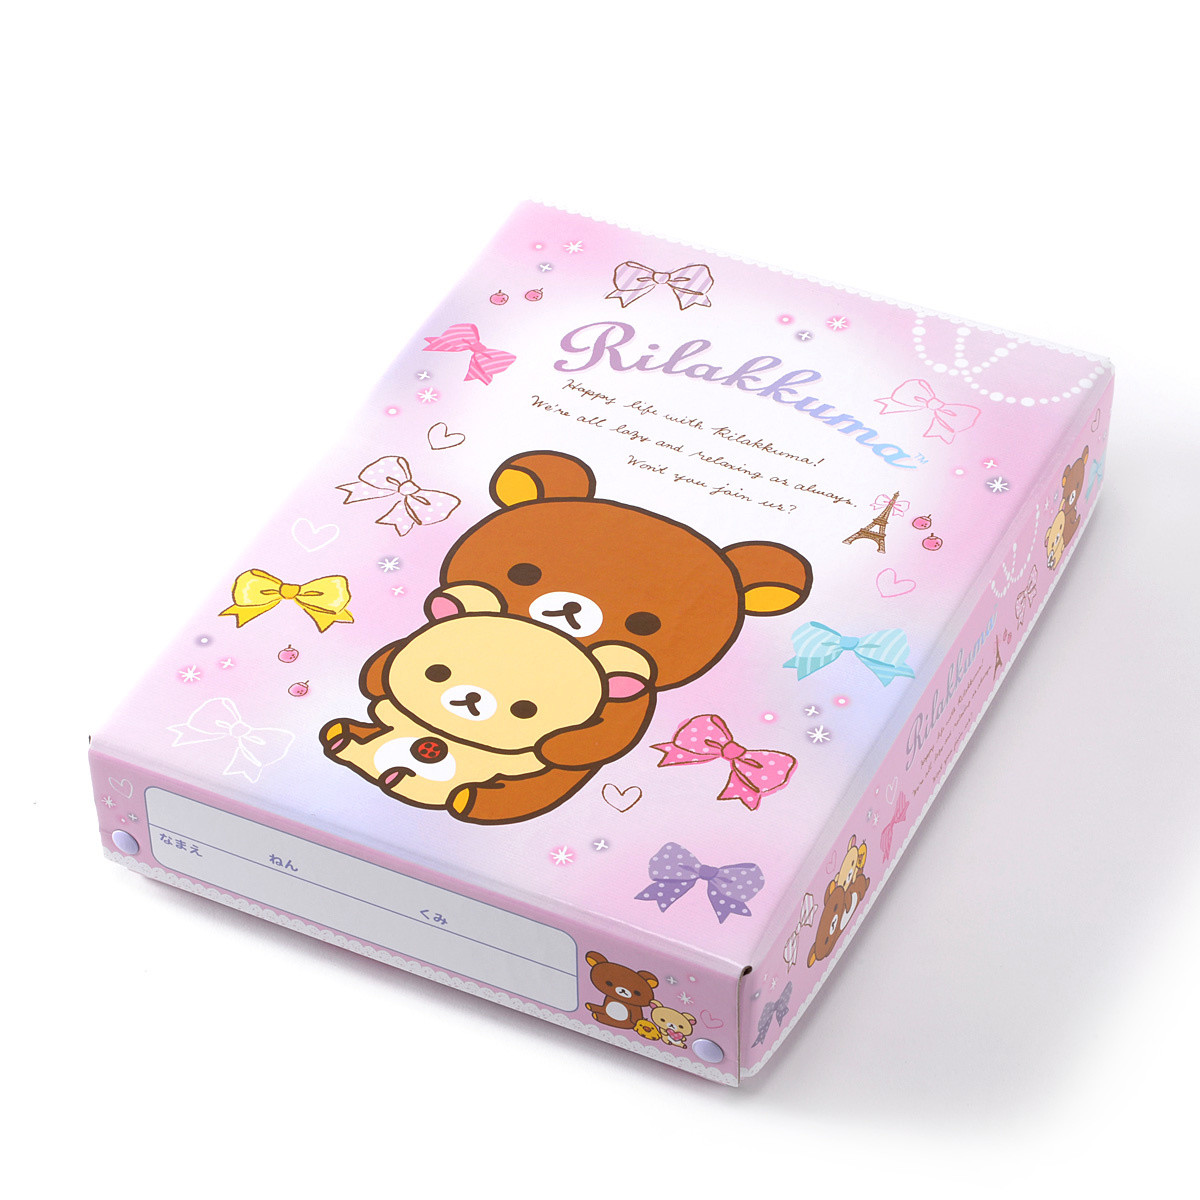 Stationary Boxes Rilakkuma Go Go School Stationery Box